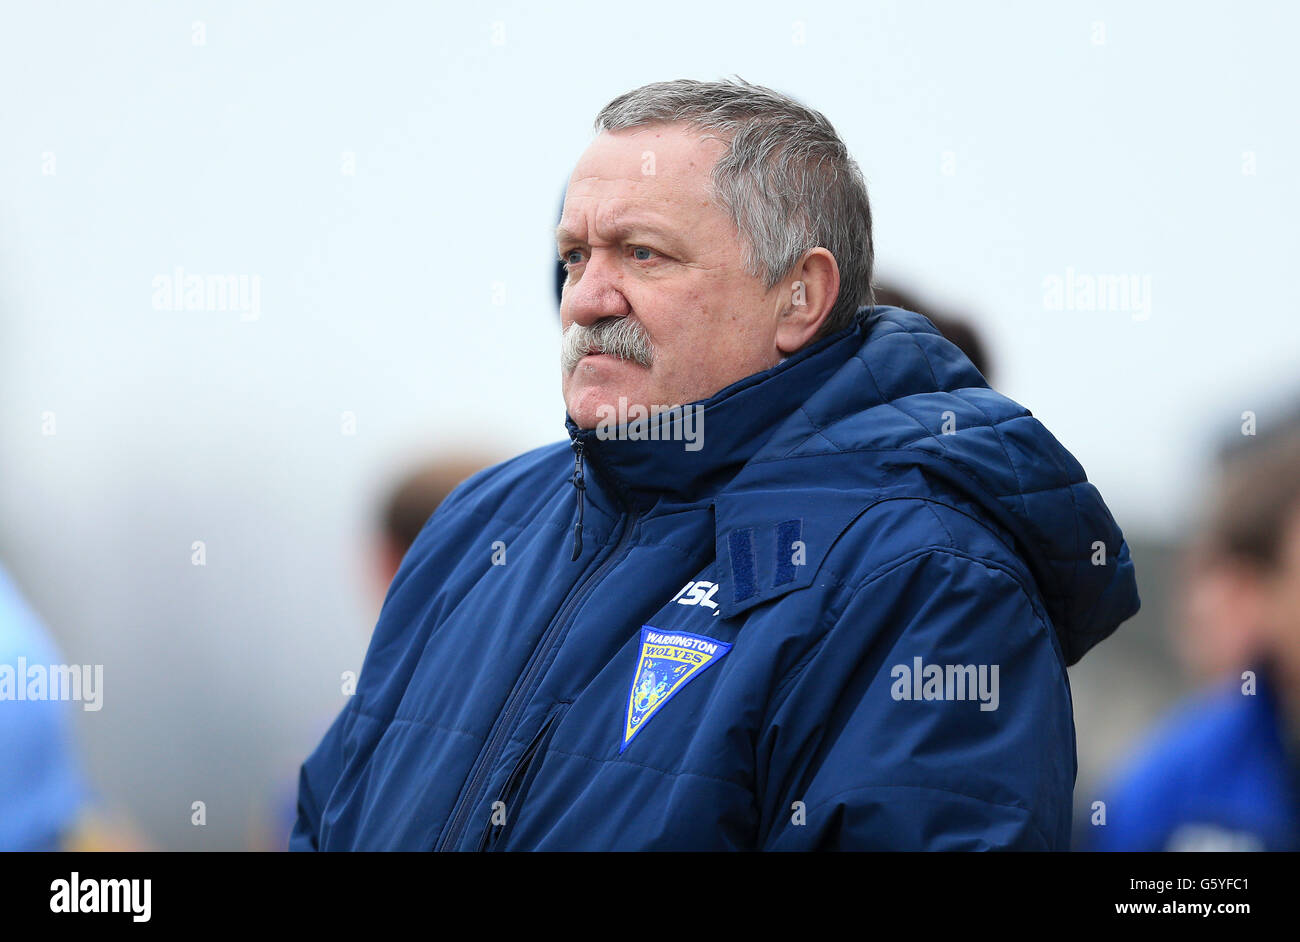 Rugby League - Stobart Super League - Hull Kingston Rovers v Warrington Wolves - Craven Park - Stock Image